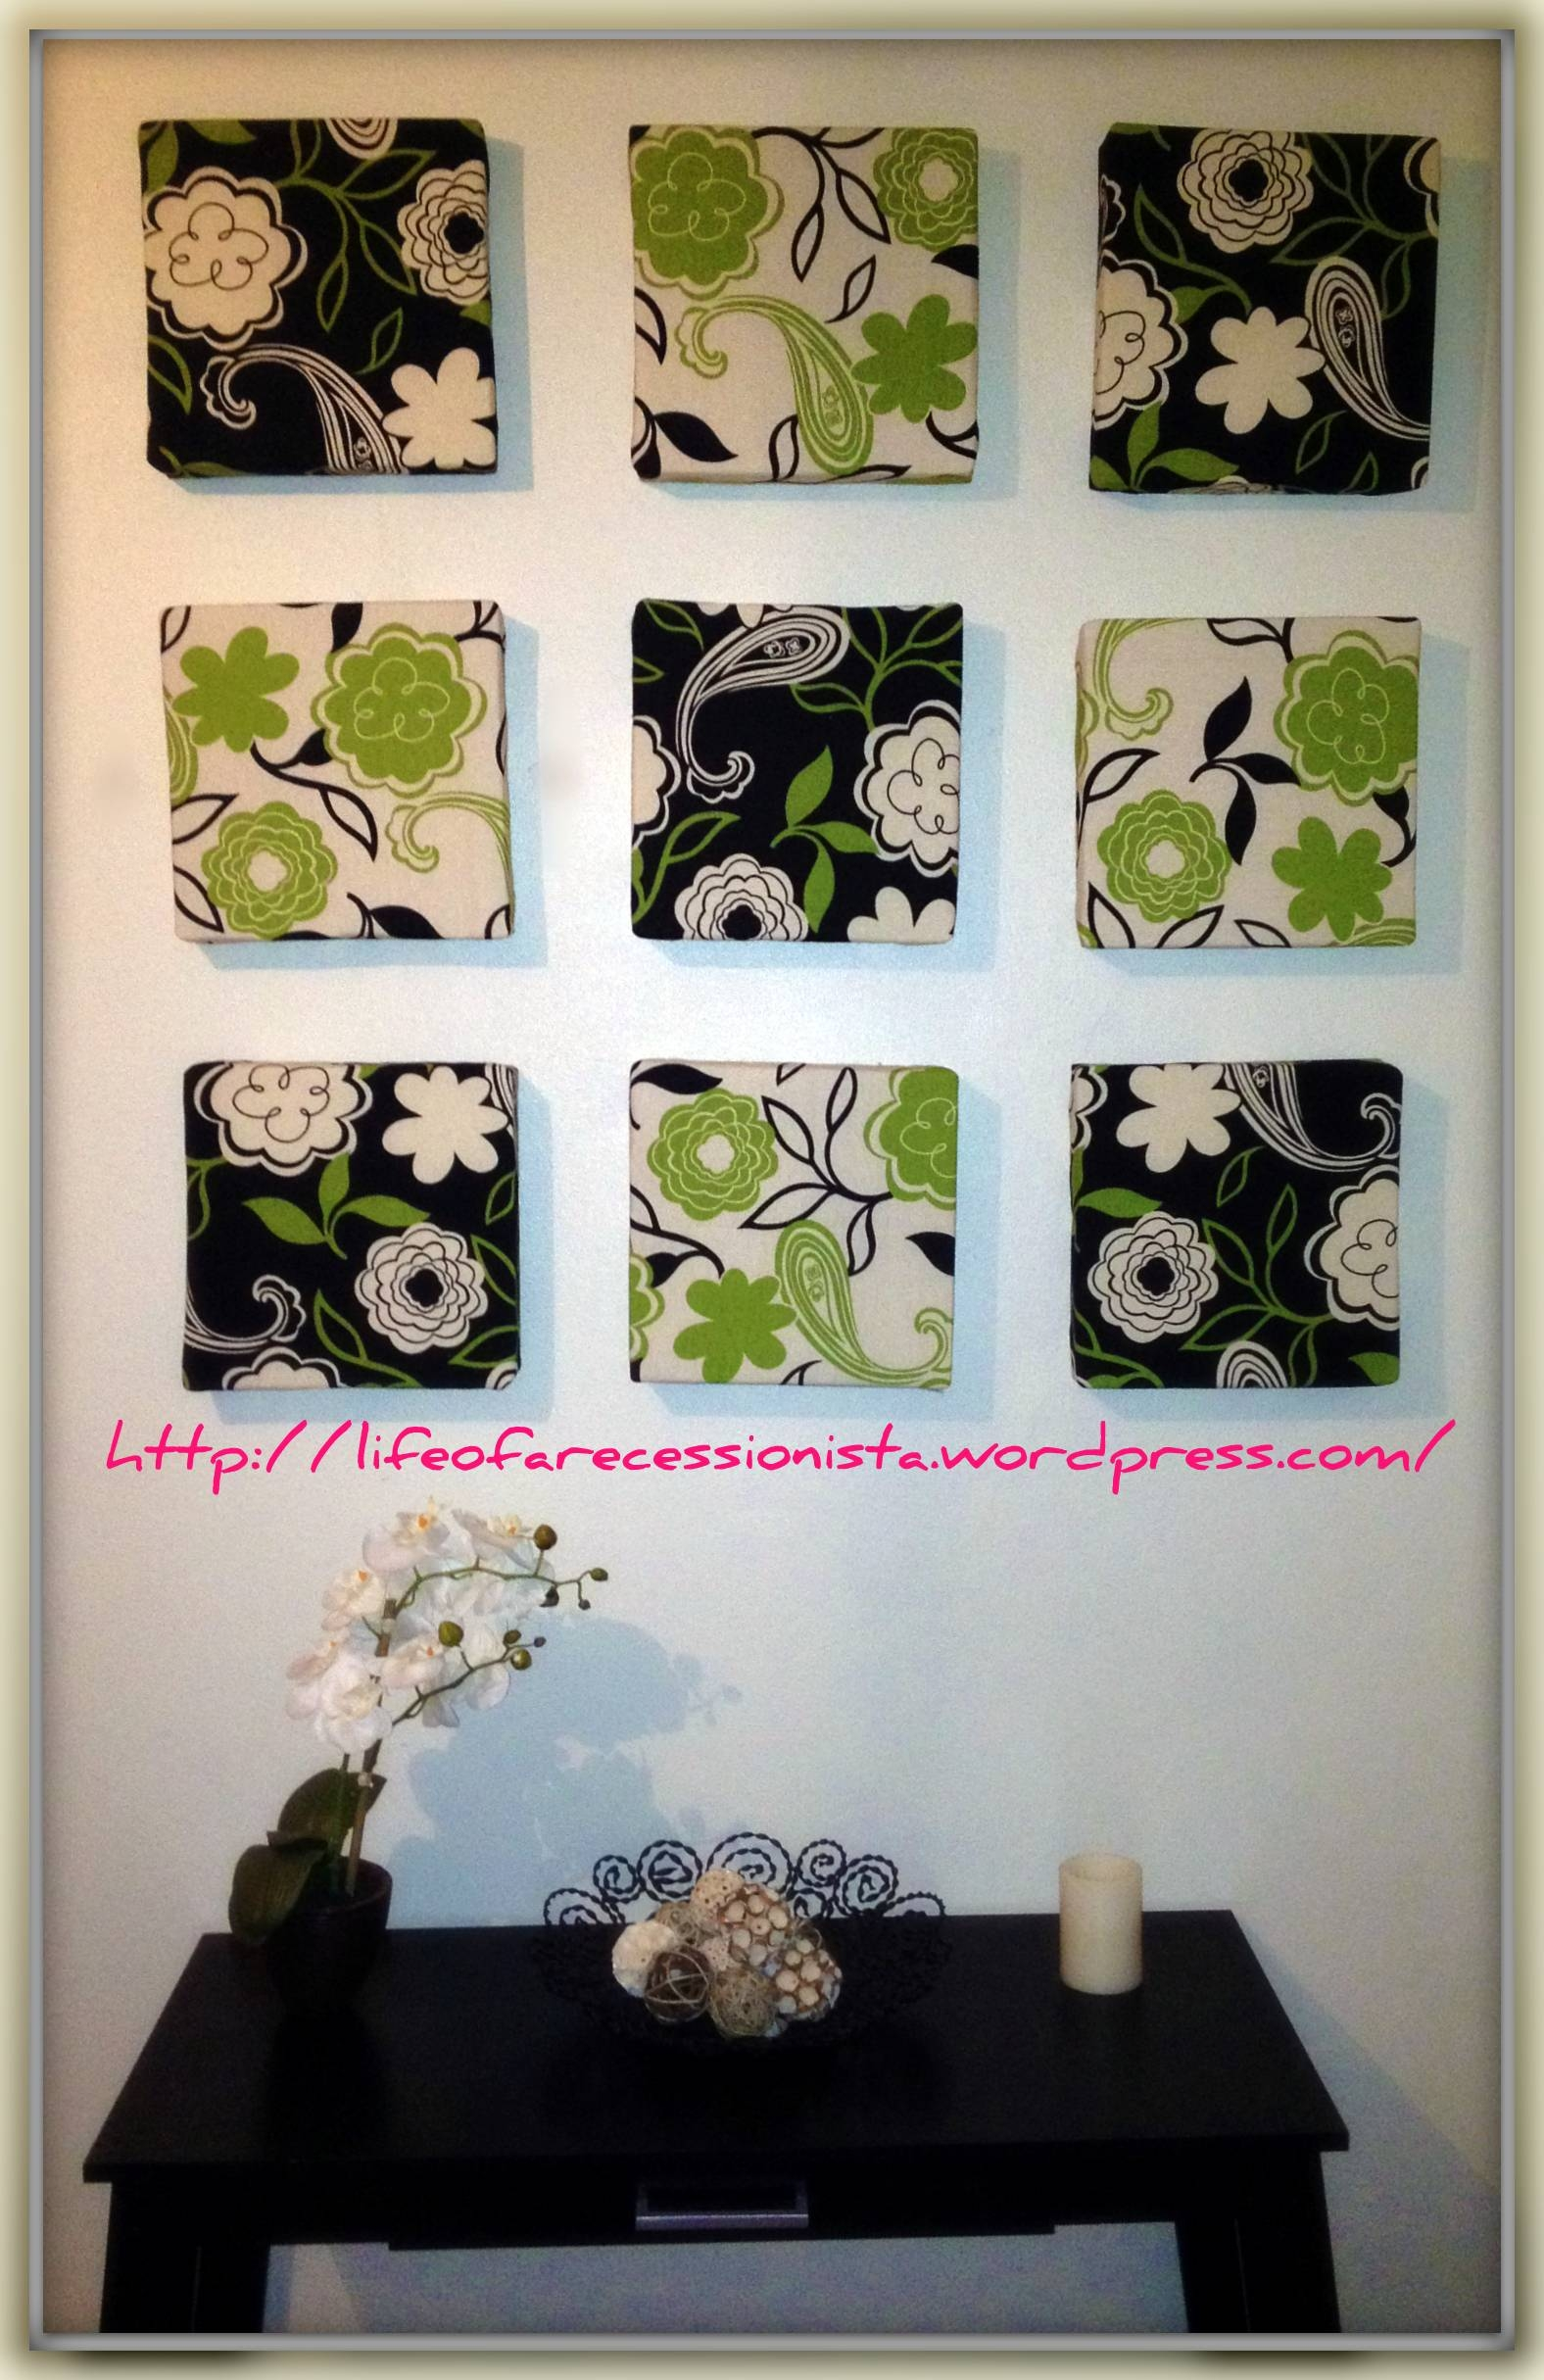 Easy Diy Wall Art | Life Of A Recessionista In 2018 Pinterest Diy Wall Art (View 22 of 25)